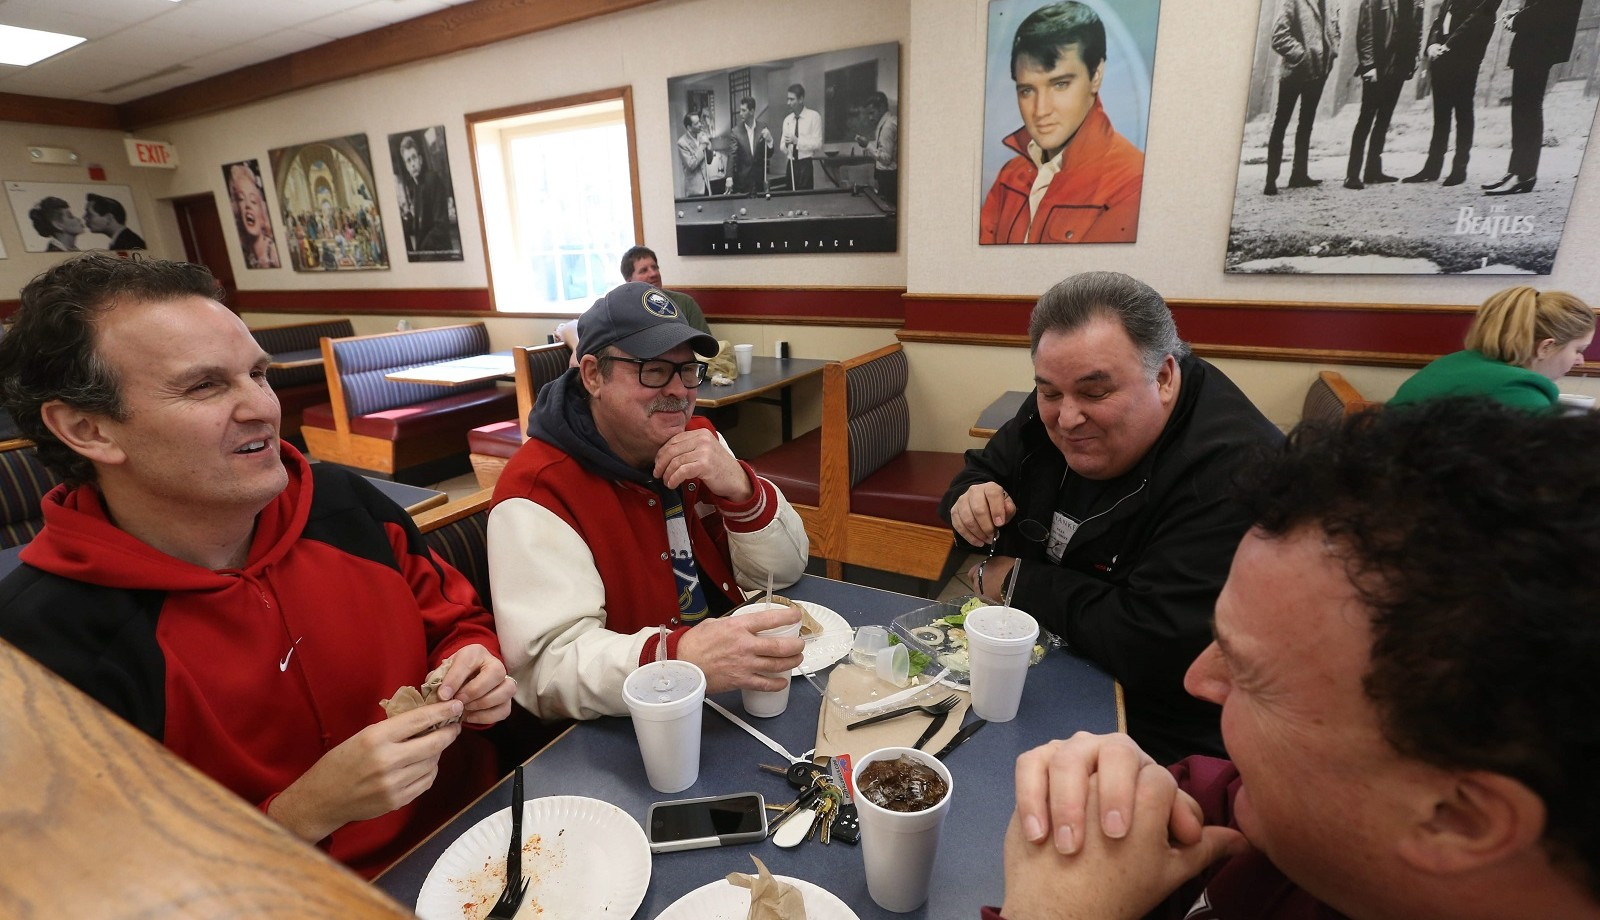 Having lunch at LT's Olde Tyme Pizza, from left, are regular customers Alan Overhoff, Sonny Hari, Alan's brother Dean Overhoff, and other brother Mark Overhoff.  (Sharon Cantillon/Buffalo News)